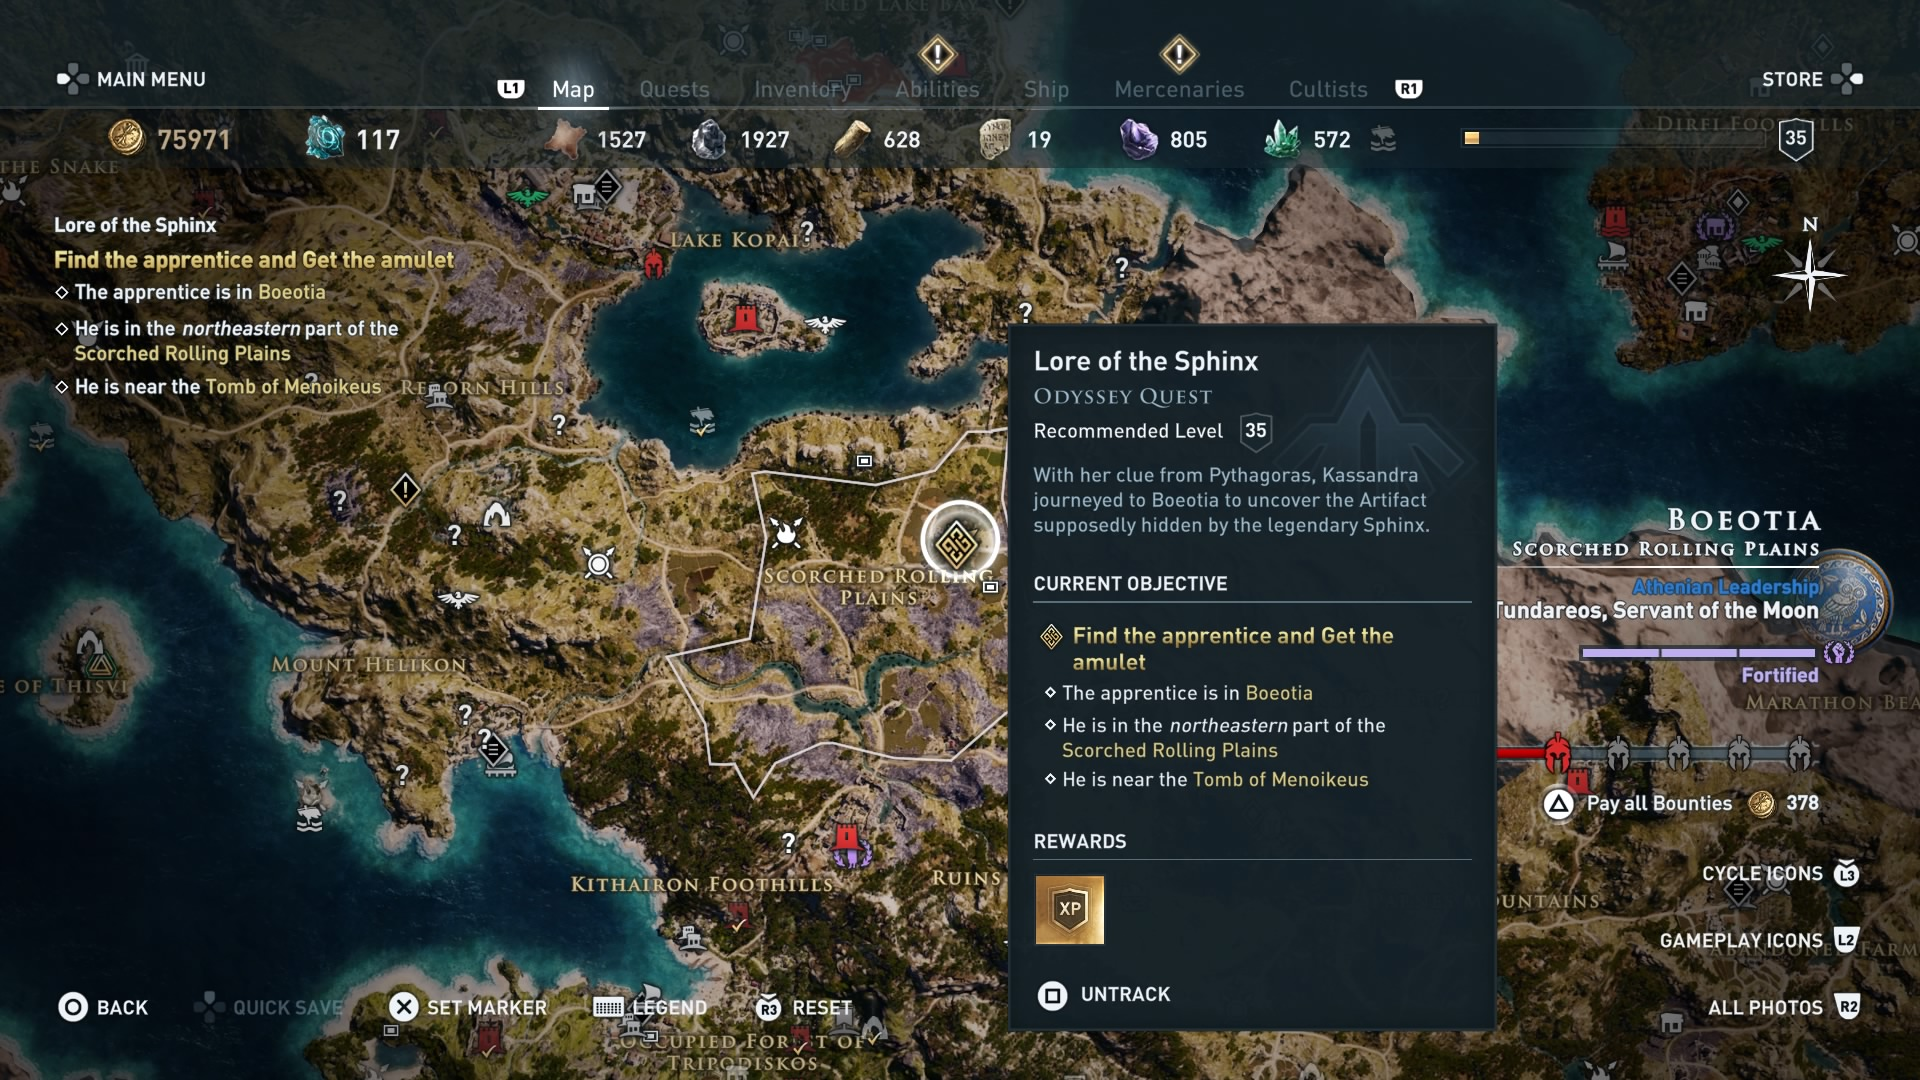 Assassin S Creed Odyssey Lore Of The Sphinx And Awaken The Myth